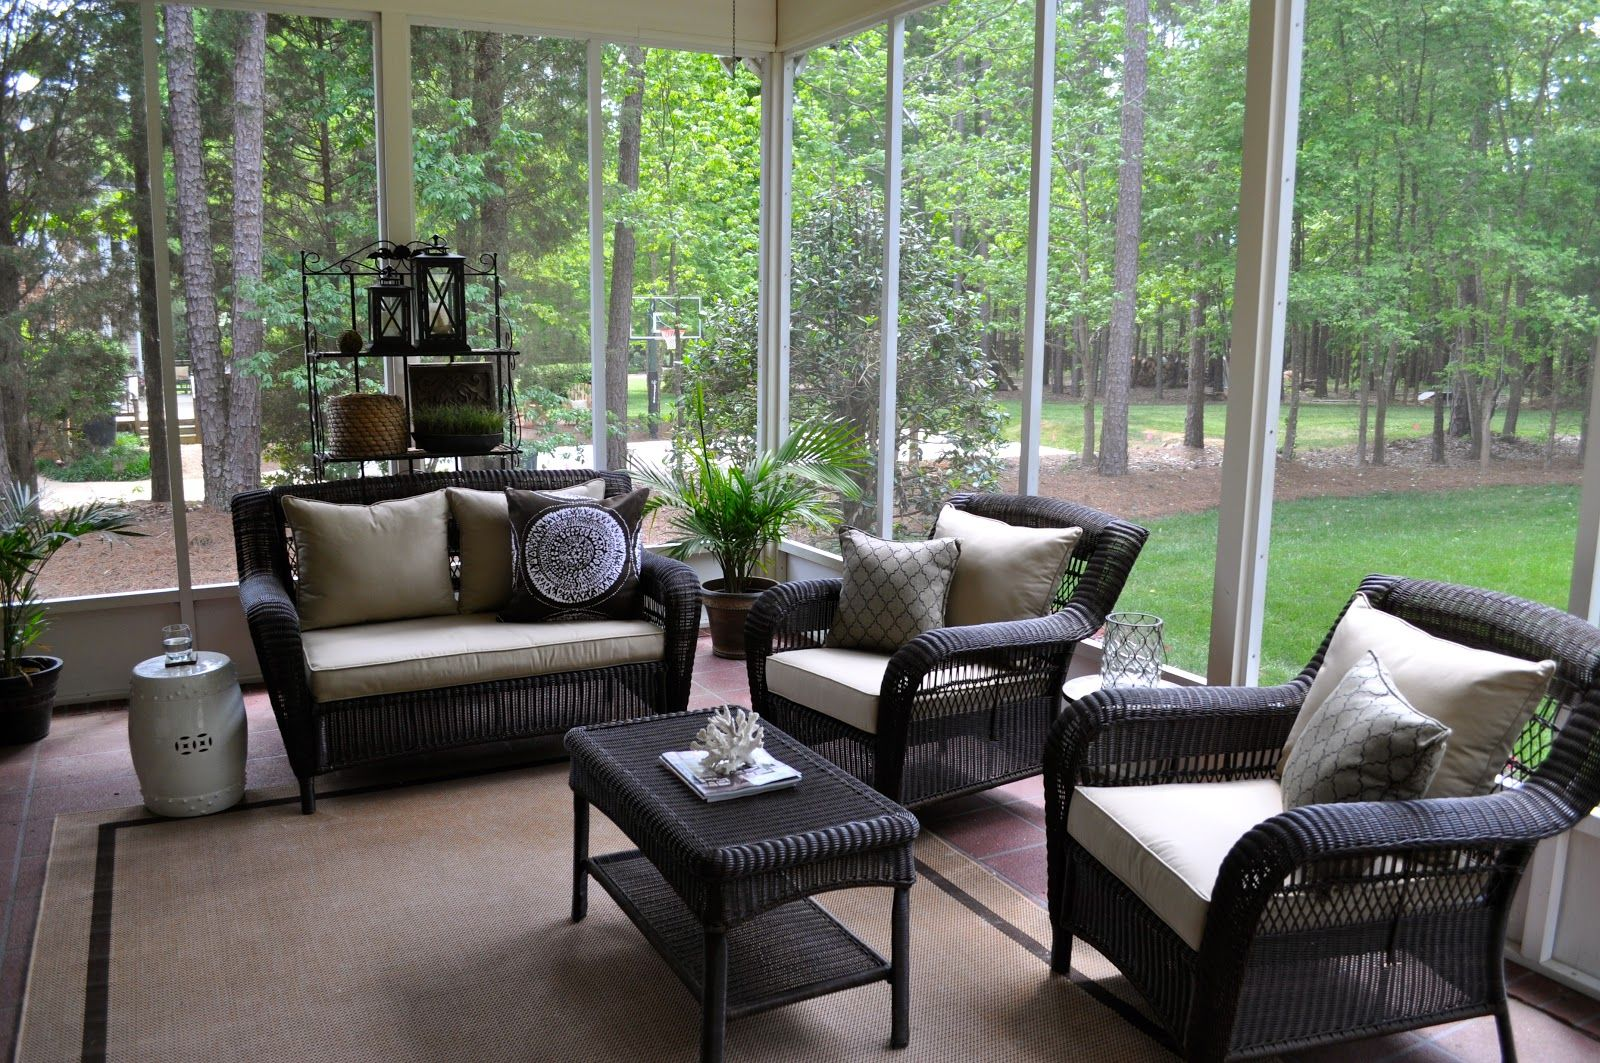 Dazzling Sams Patio Furniture In Screened Porch